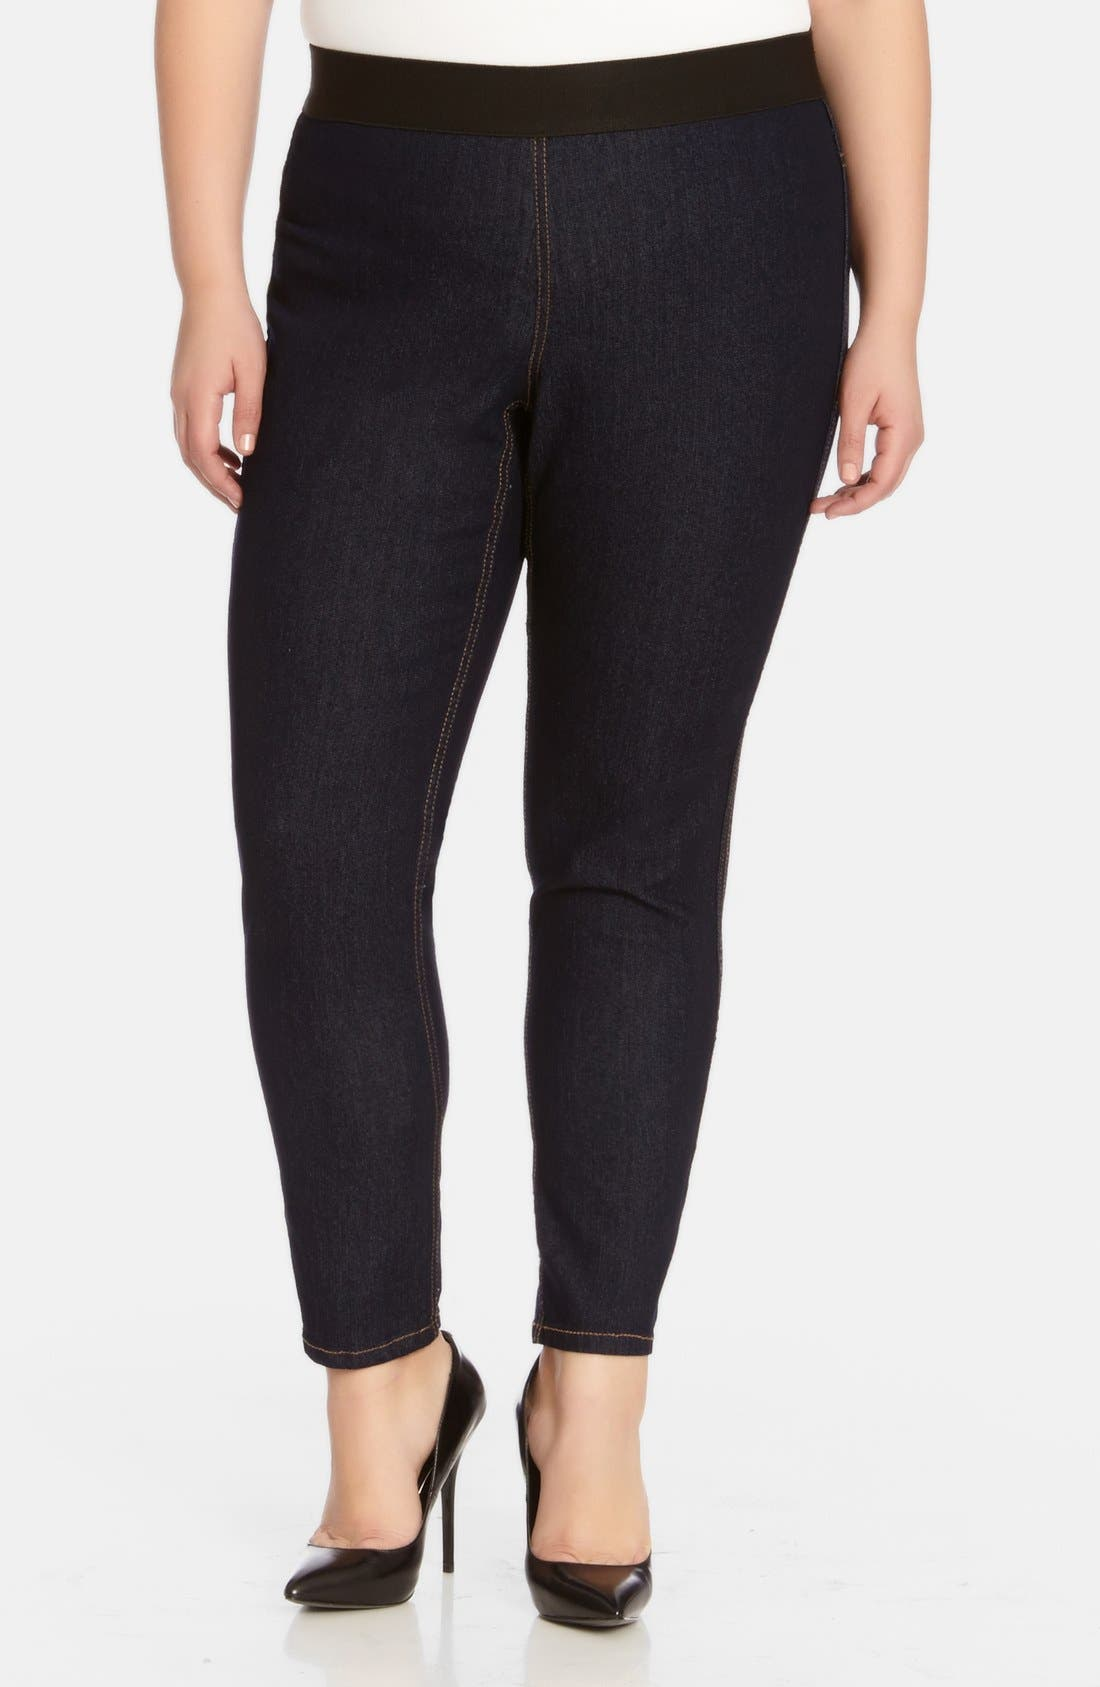 Plus Size Karen Kane Dark Rinse Denim Leggings